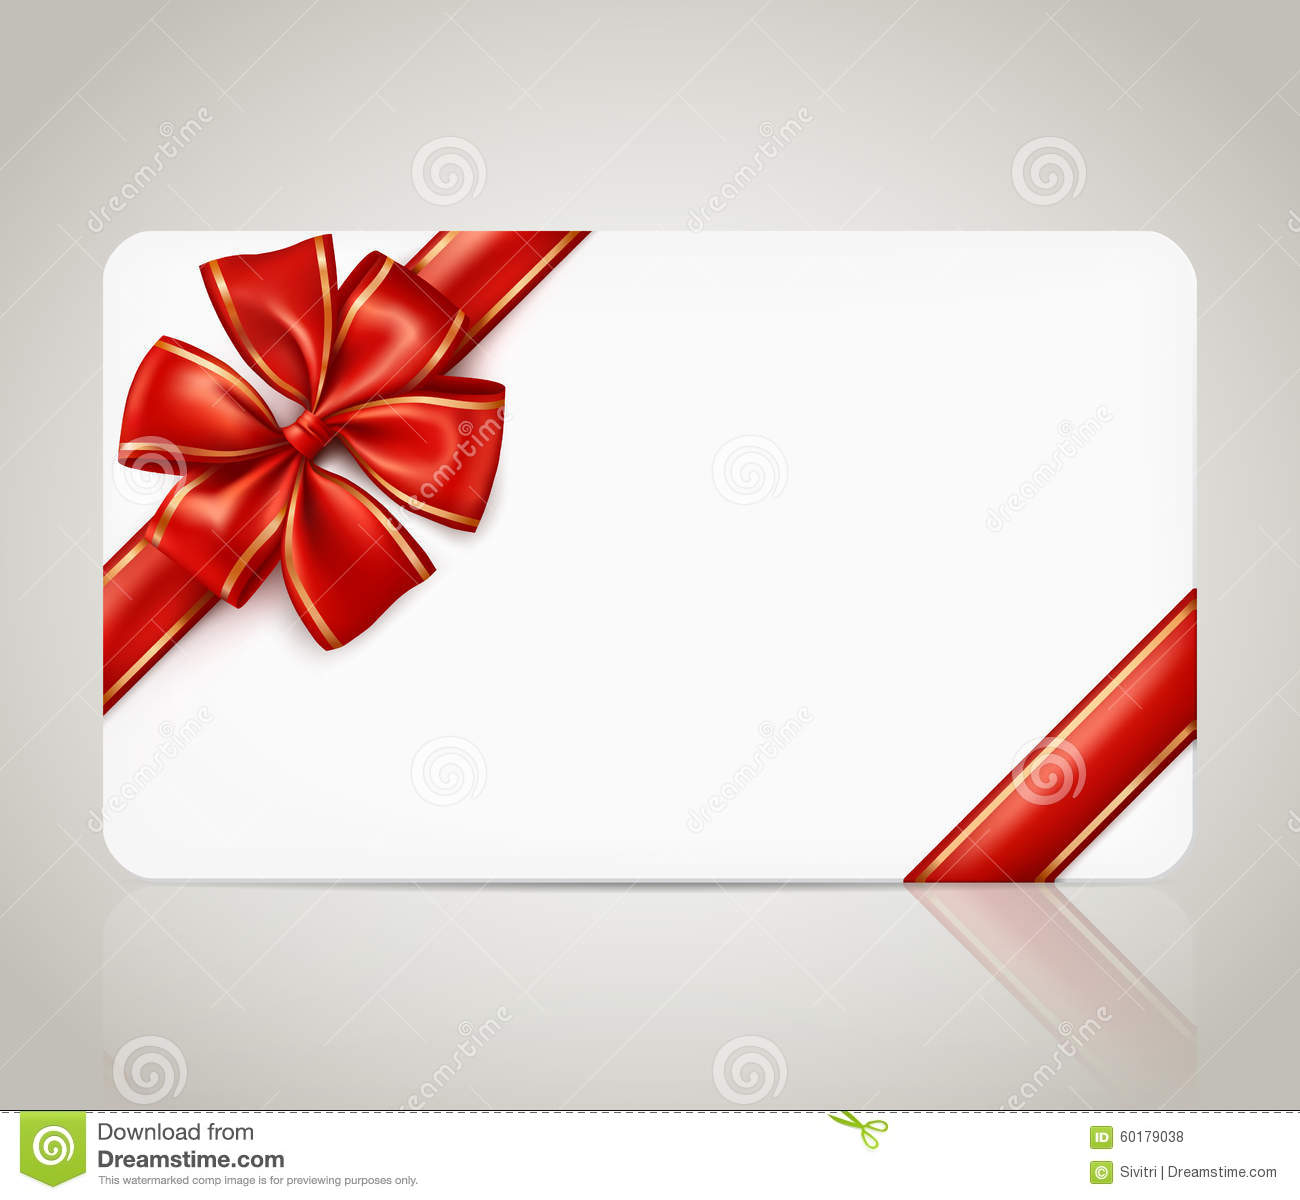 gift box blank template | technologybusiness